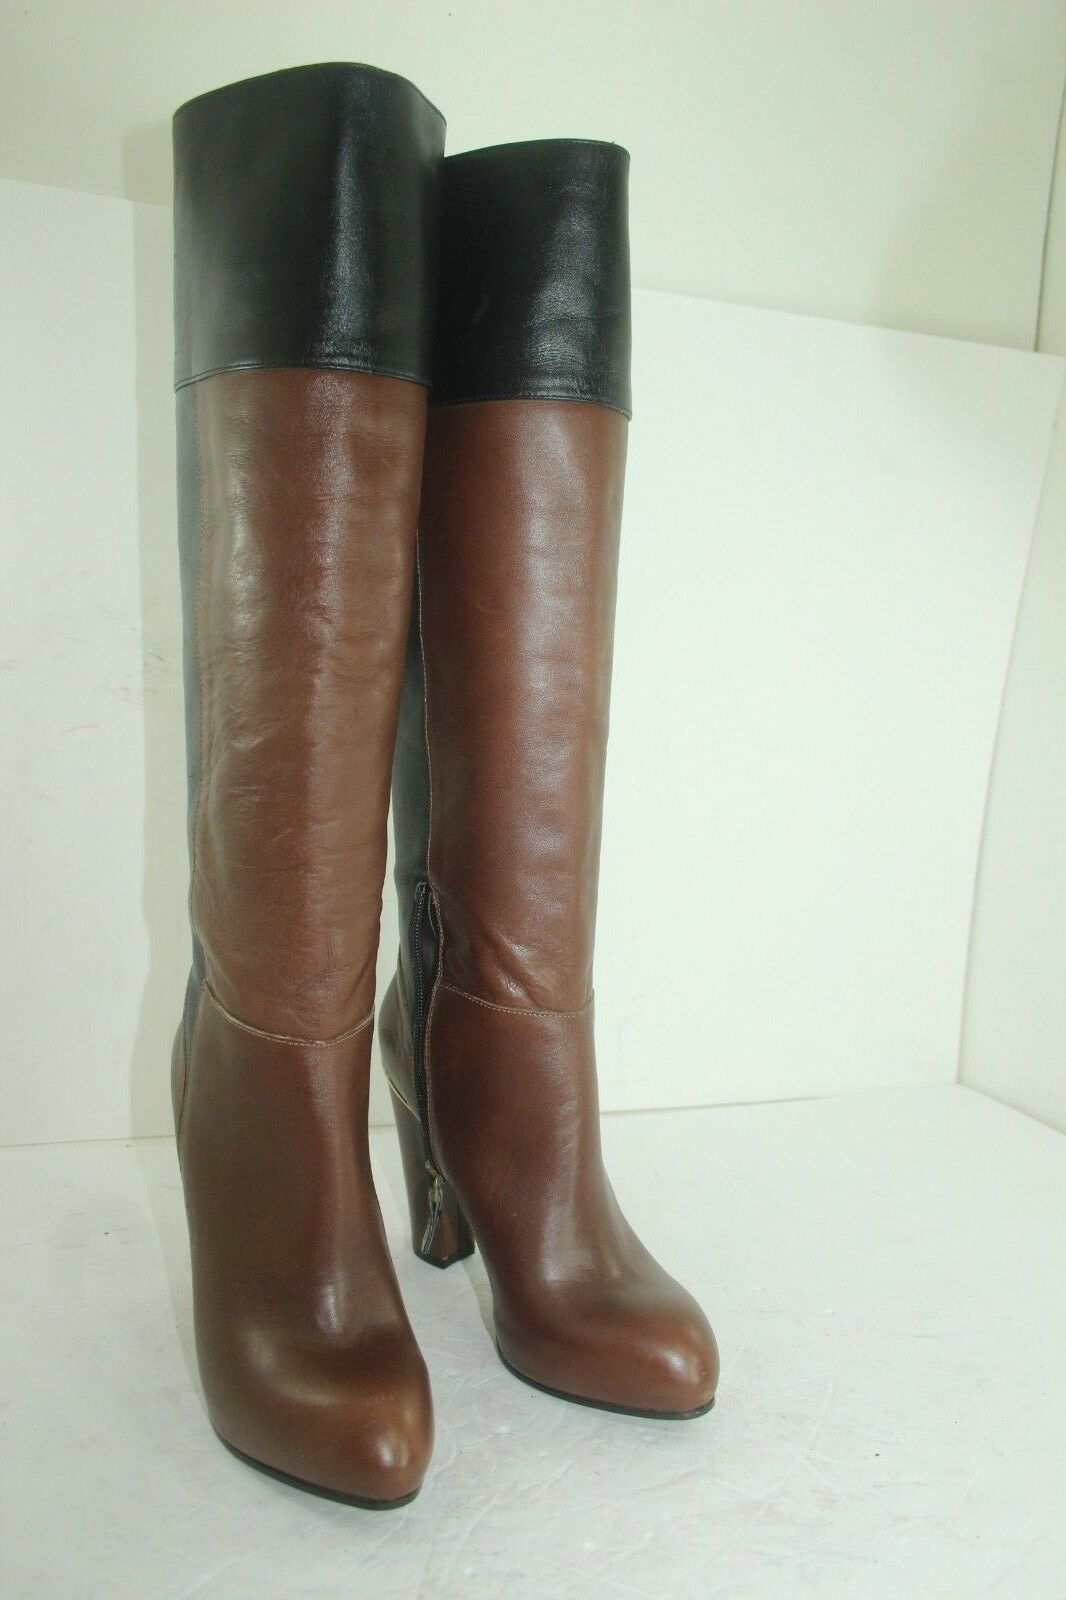 Latitude Femme Handcrafted In Italy Genuine Leather Heel Boots  Sz 36 US SZ 6